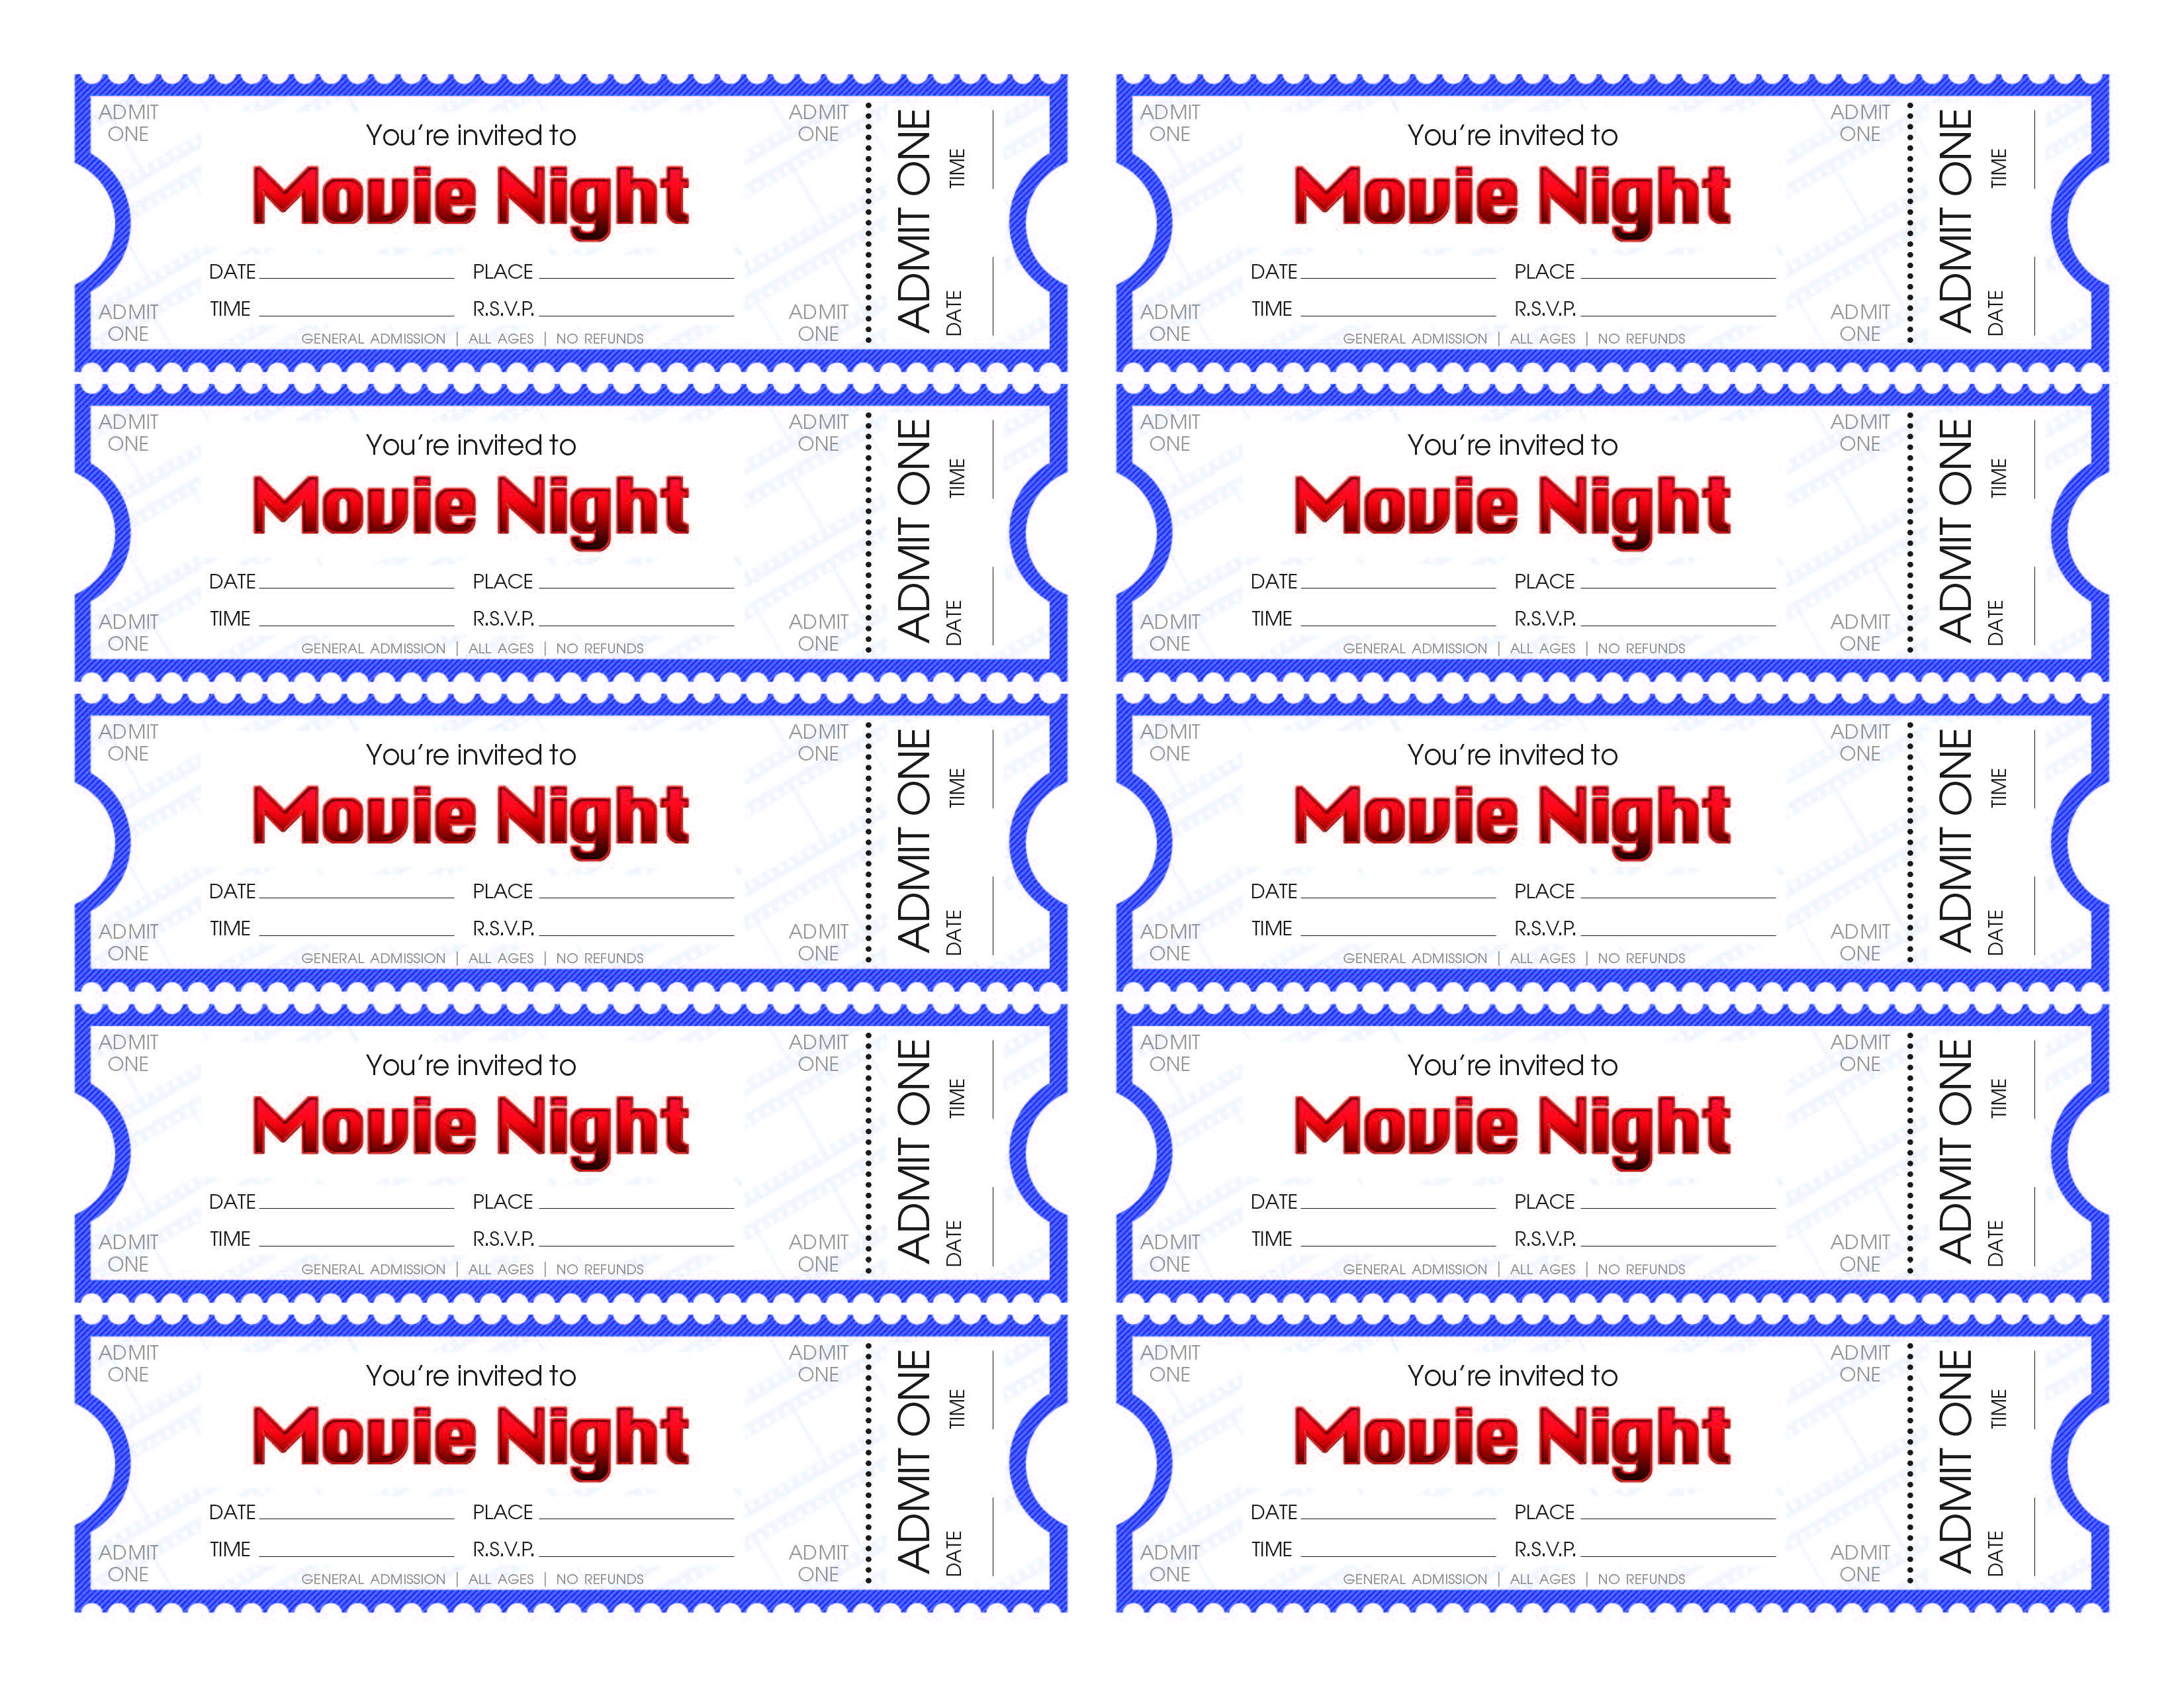 How To Make Your Own Tickets - Tutlin.psstech.co - Make Your Own Tickets Free Printable